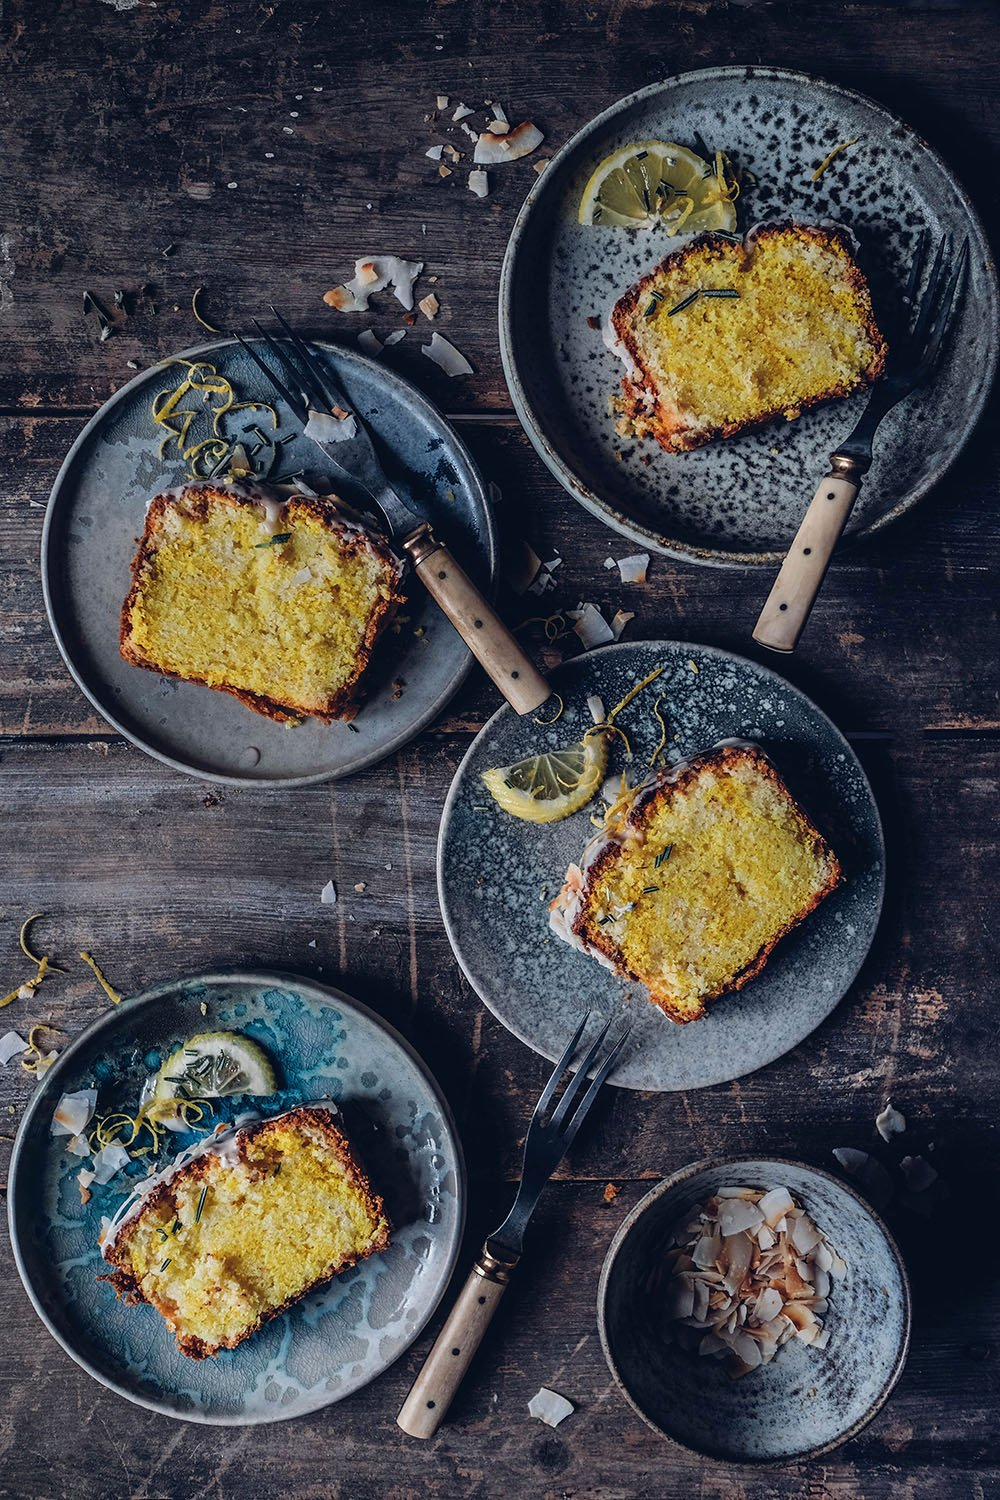 Easy and Delicious Gluten-free Lemon Cake with Rosemary